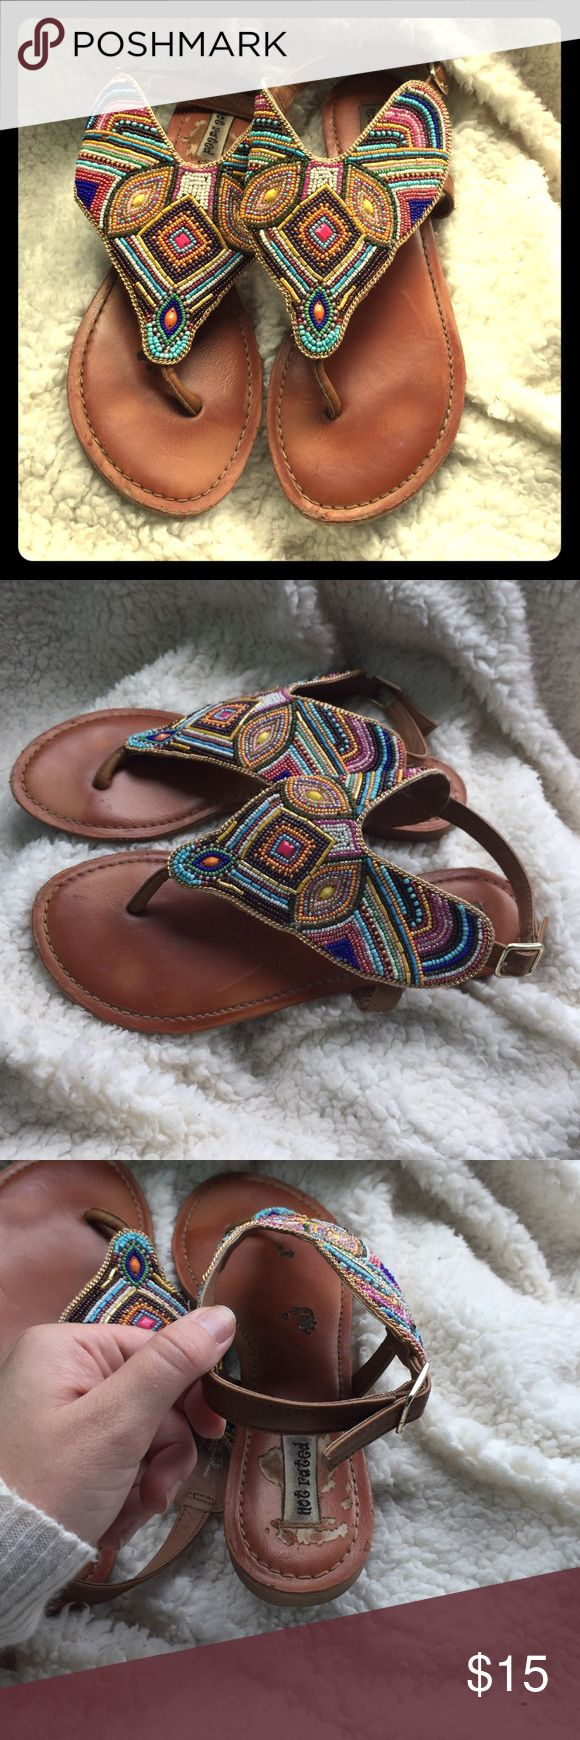 Beaded Sandals I love these sandals! As you can see, these sandals have been worn, but they're still in okay condition. The sole on the right sandal has some wear in it (as pictured)! Beads are all still in tact! #notrated #beadedsandals #supercute #sandals Not Rated Shoes Sandals